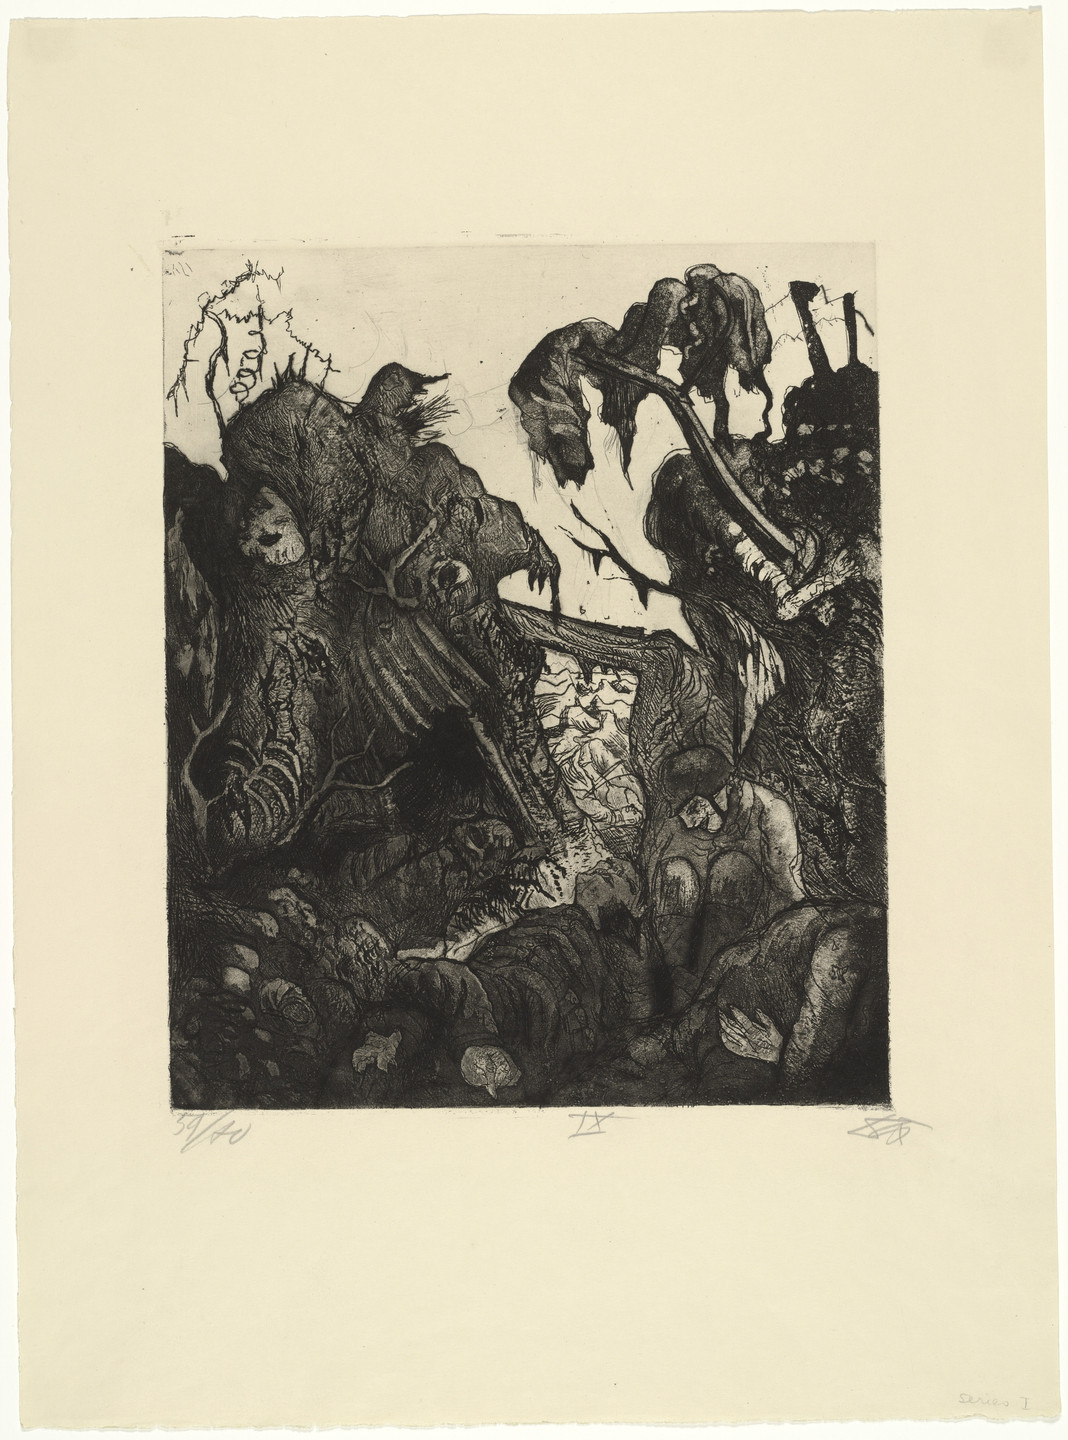 Otto Dix. Disintegrating Trench (Zerfallender Kampfgraben) from The War (Der Krieg). 1924